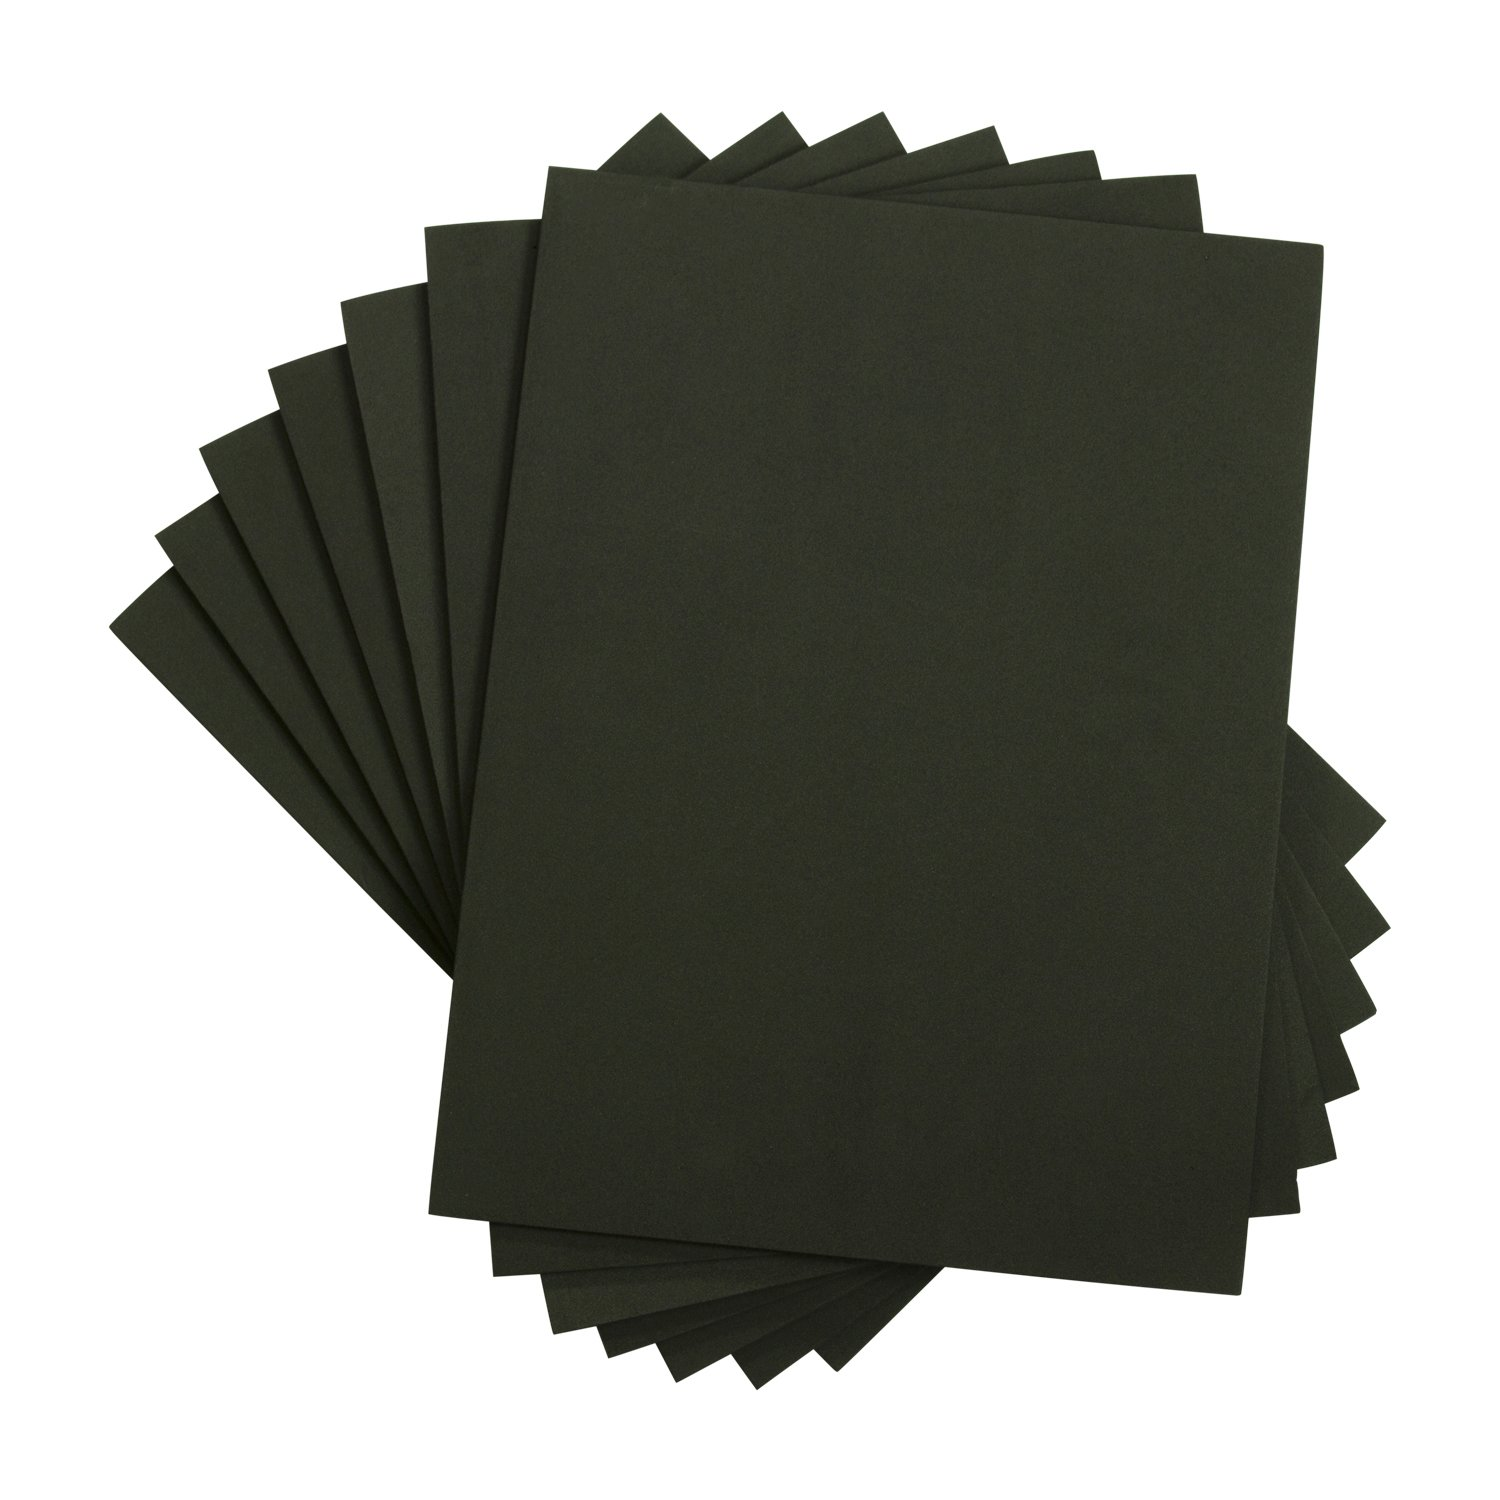 Houseables Crafts Foam Sheets, Art Supplies, EVA, 6mm Thick, Black, 9 X 12 inch, 10 Pack, Paper Scrapbooking, Cosplay, Crafting Foams Paper, Foamie Crafts, for Kids, Boy Souts, Halloween, Cushion FST-BK-0912